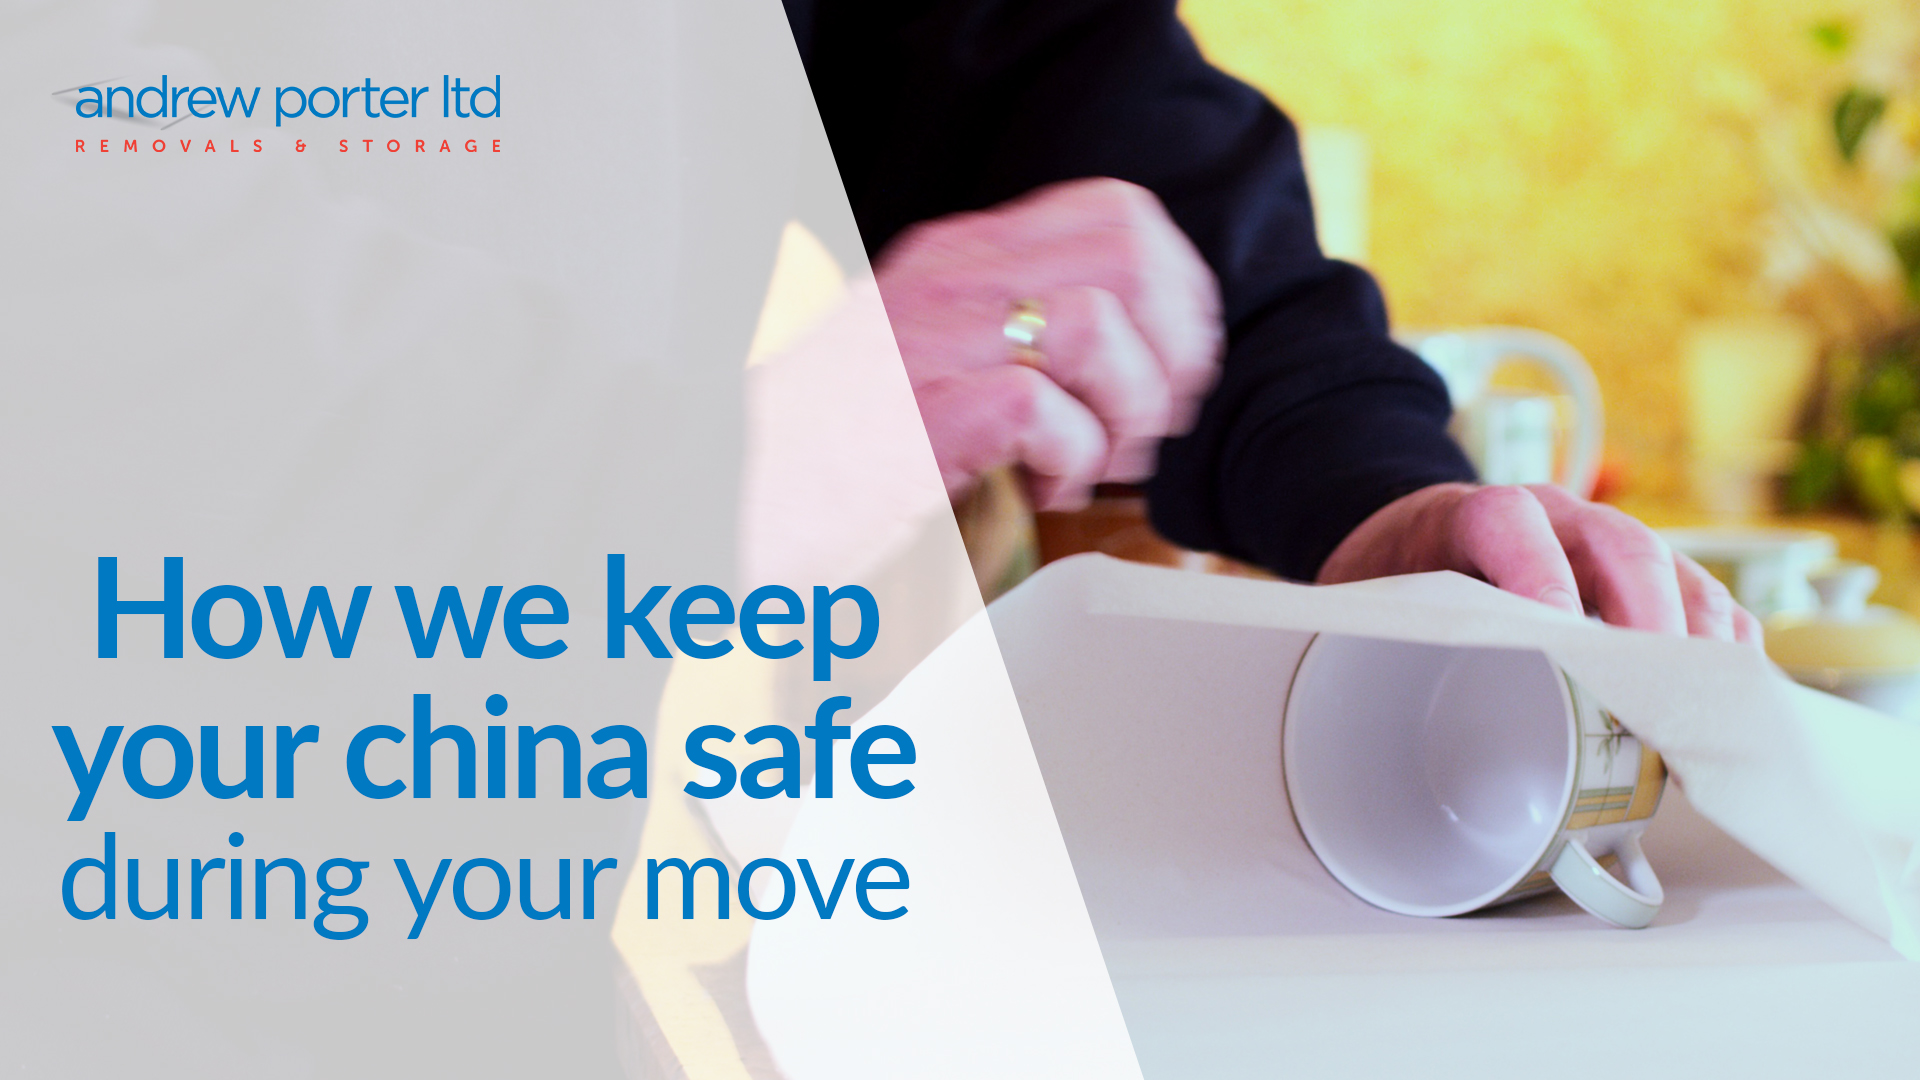 How we keep your china safe during your move